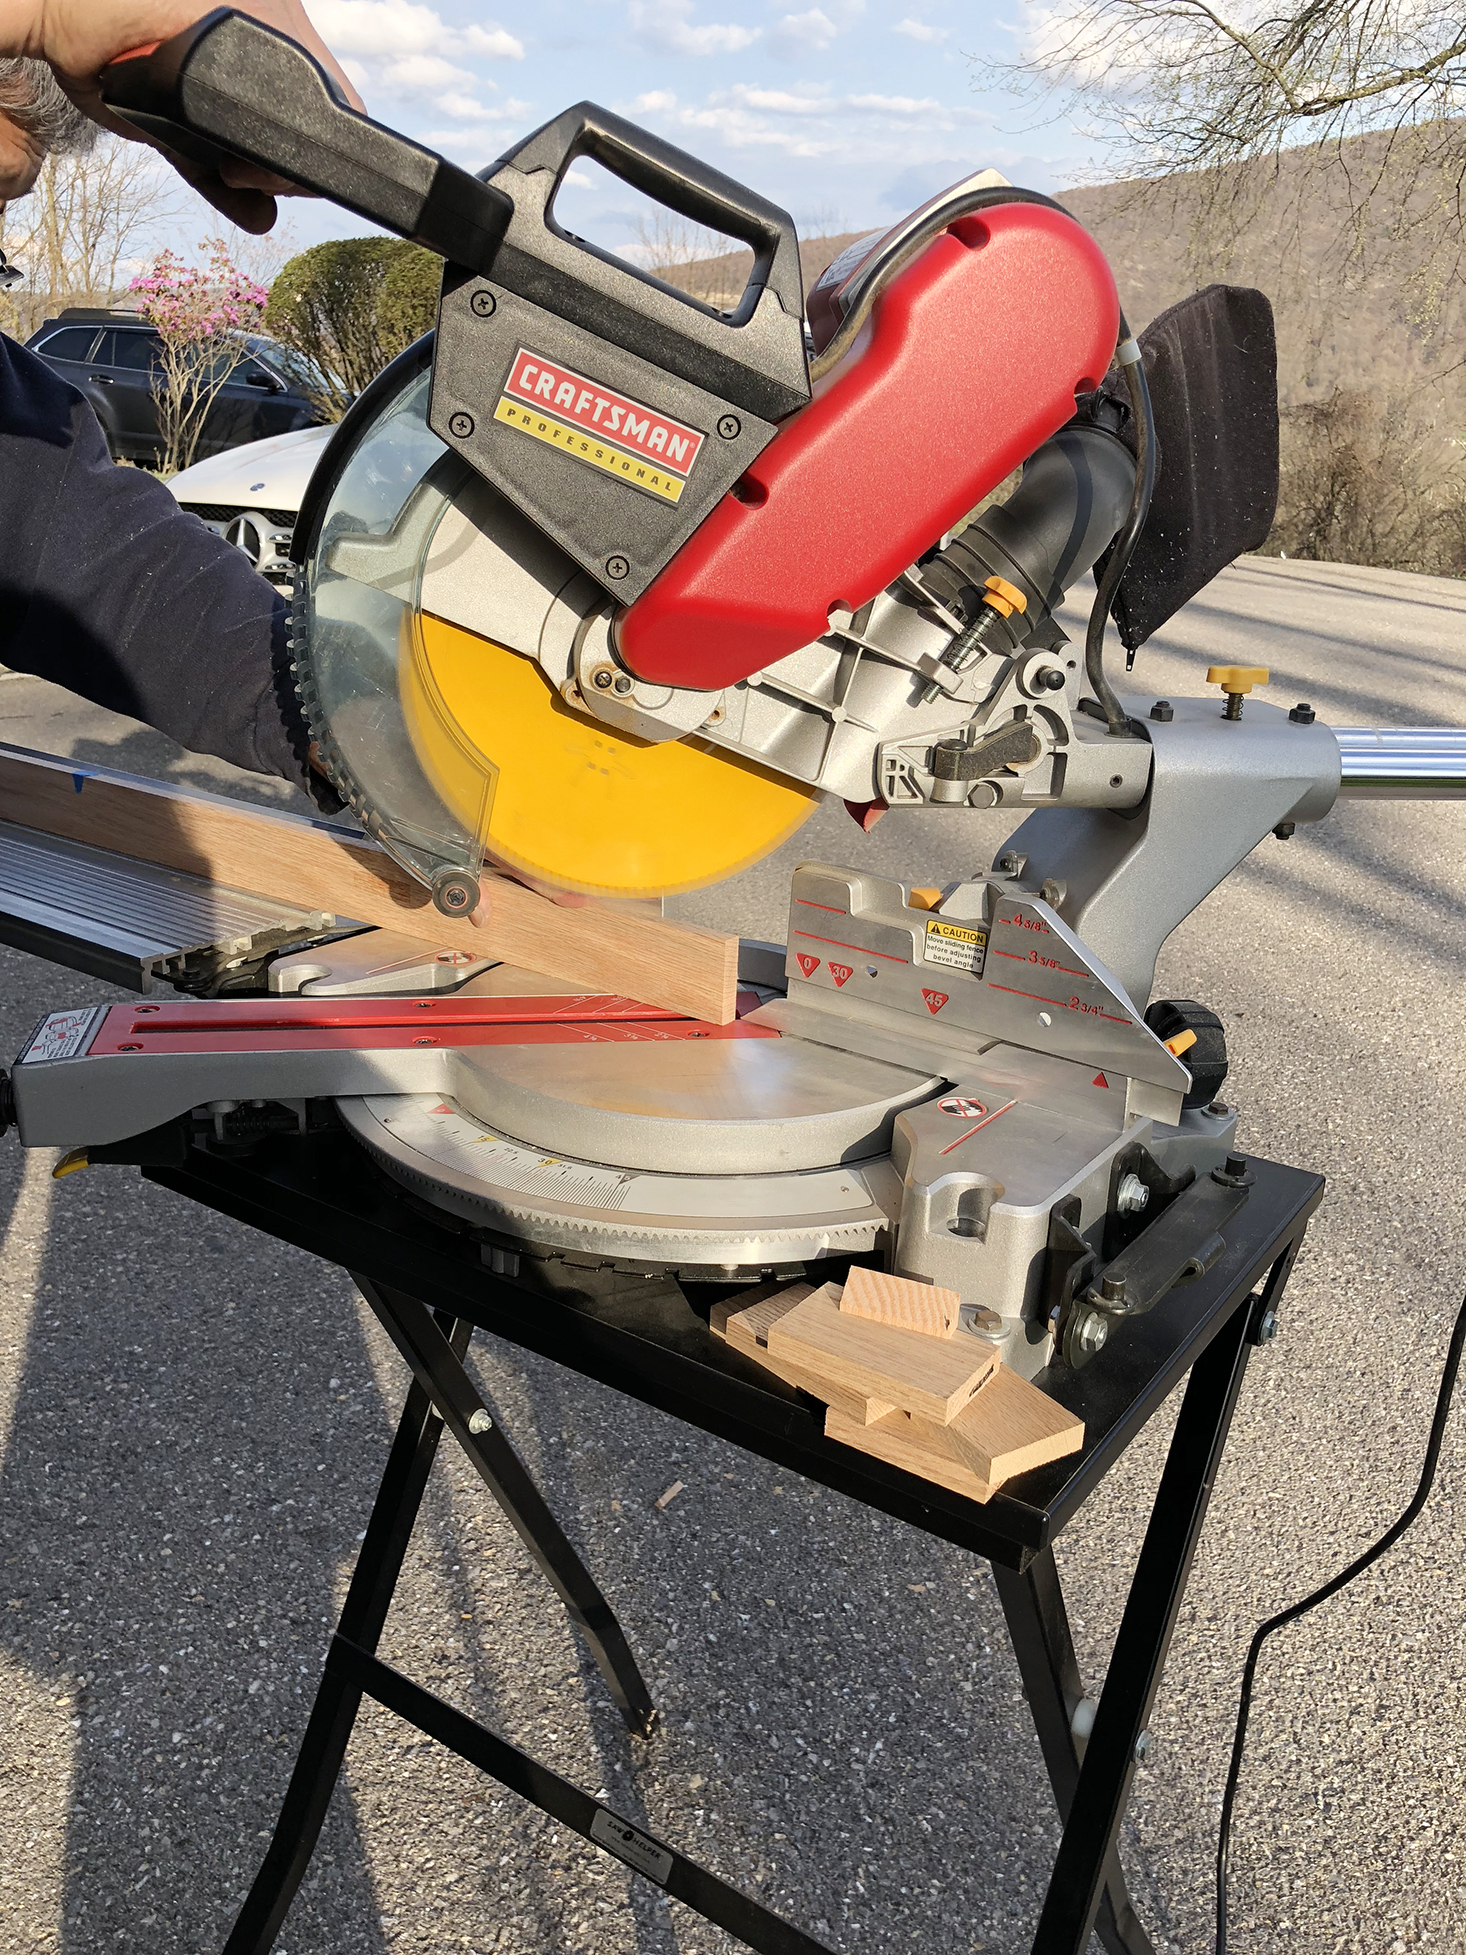 Cutting frame pieces with a miter saw